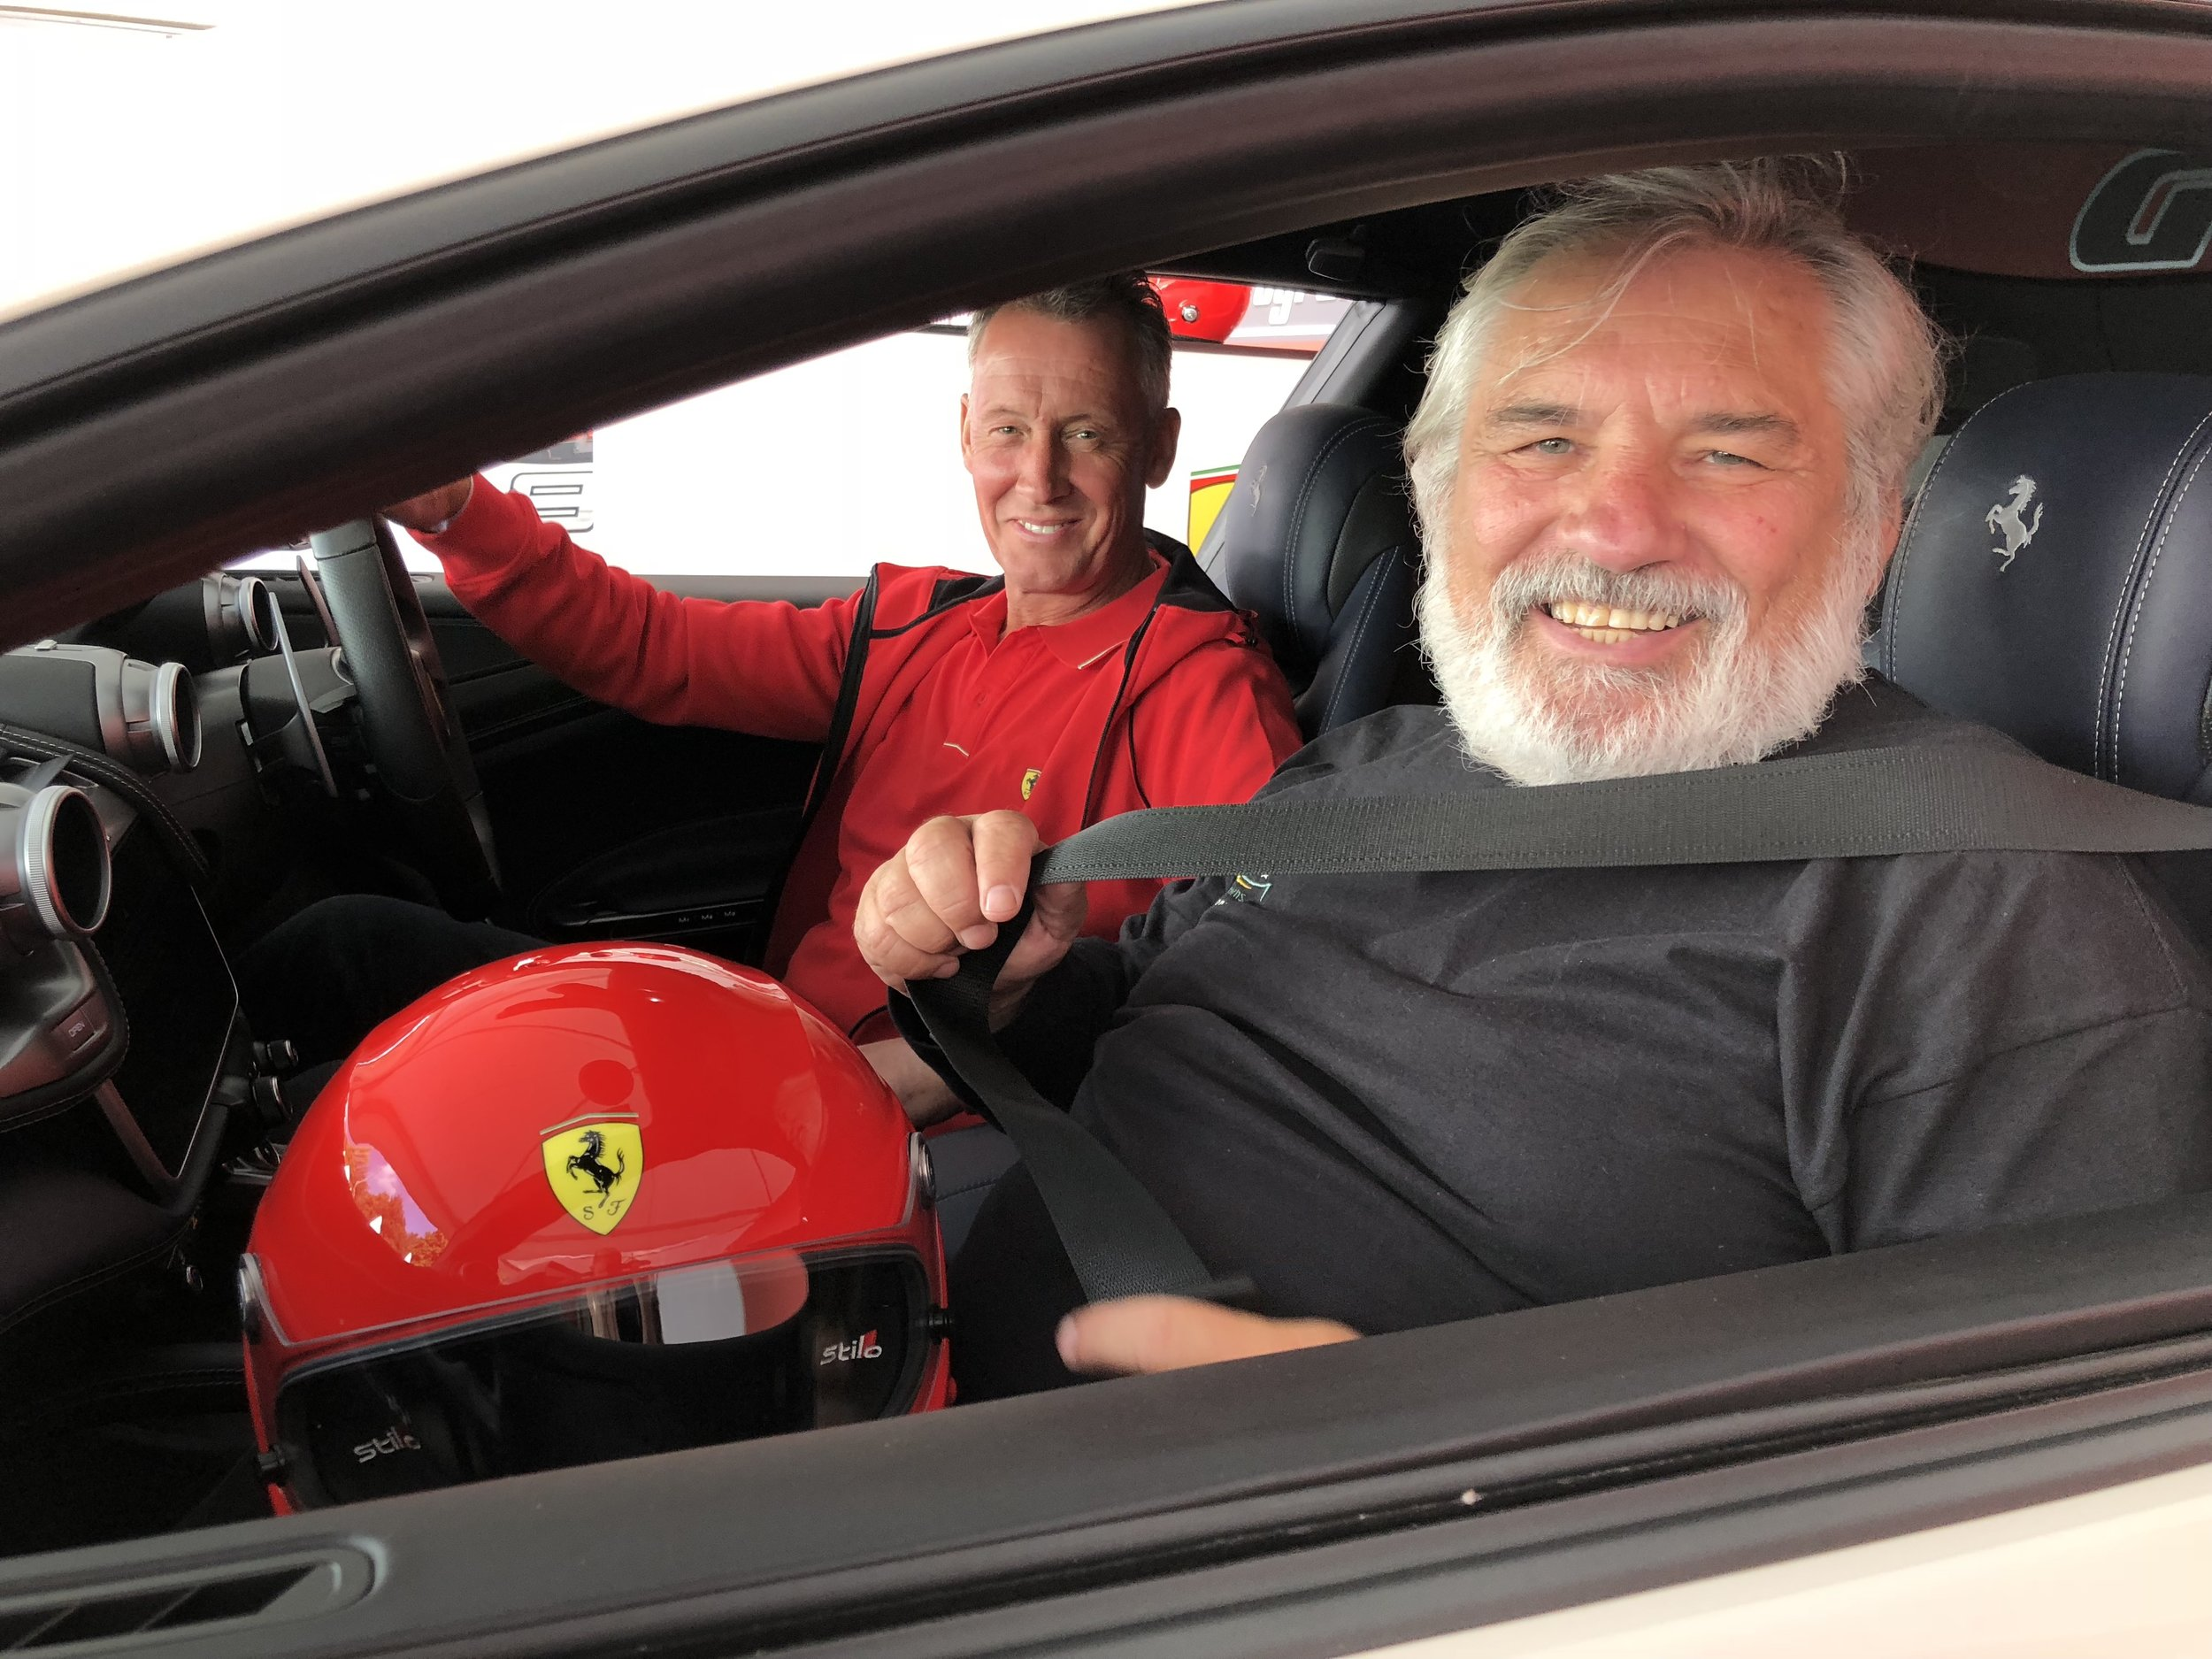 MM Beneficiary Kevin Reilly beaming after a passenger ride in a Ferrari